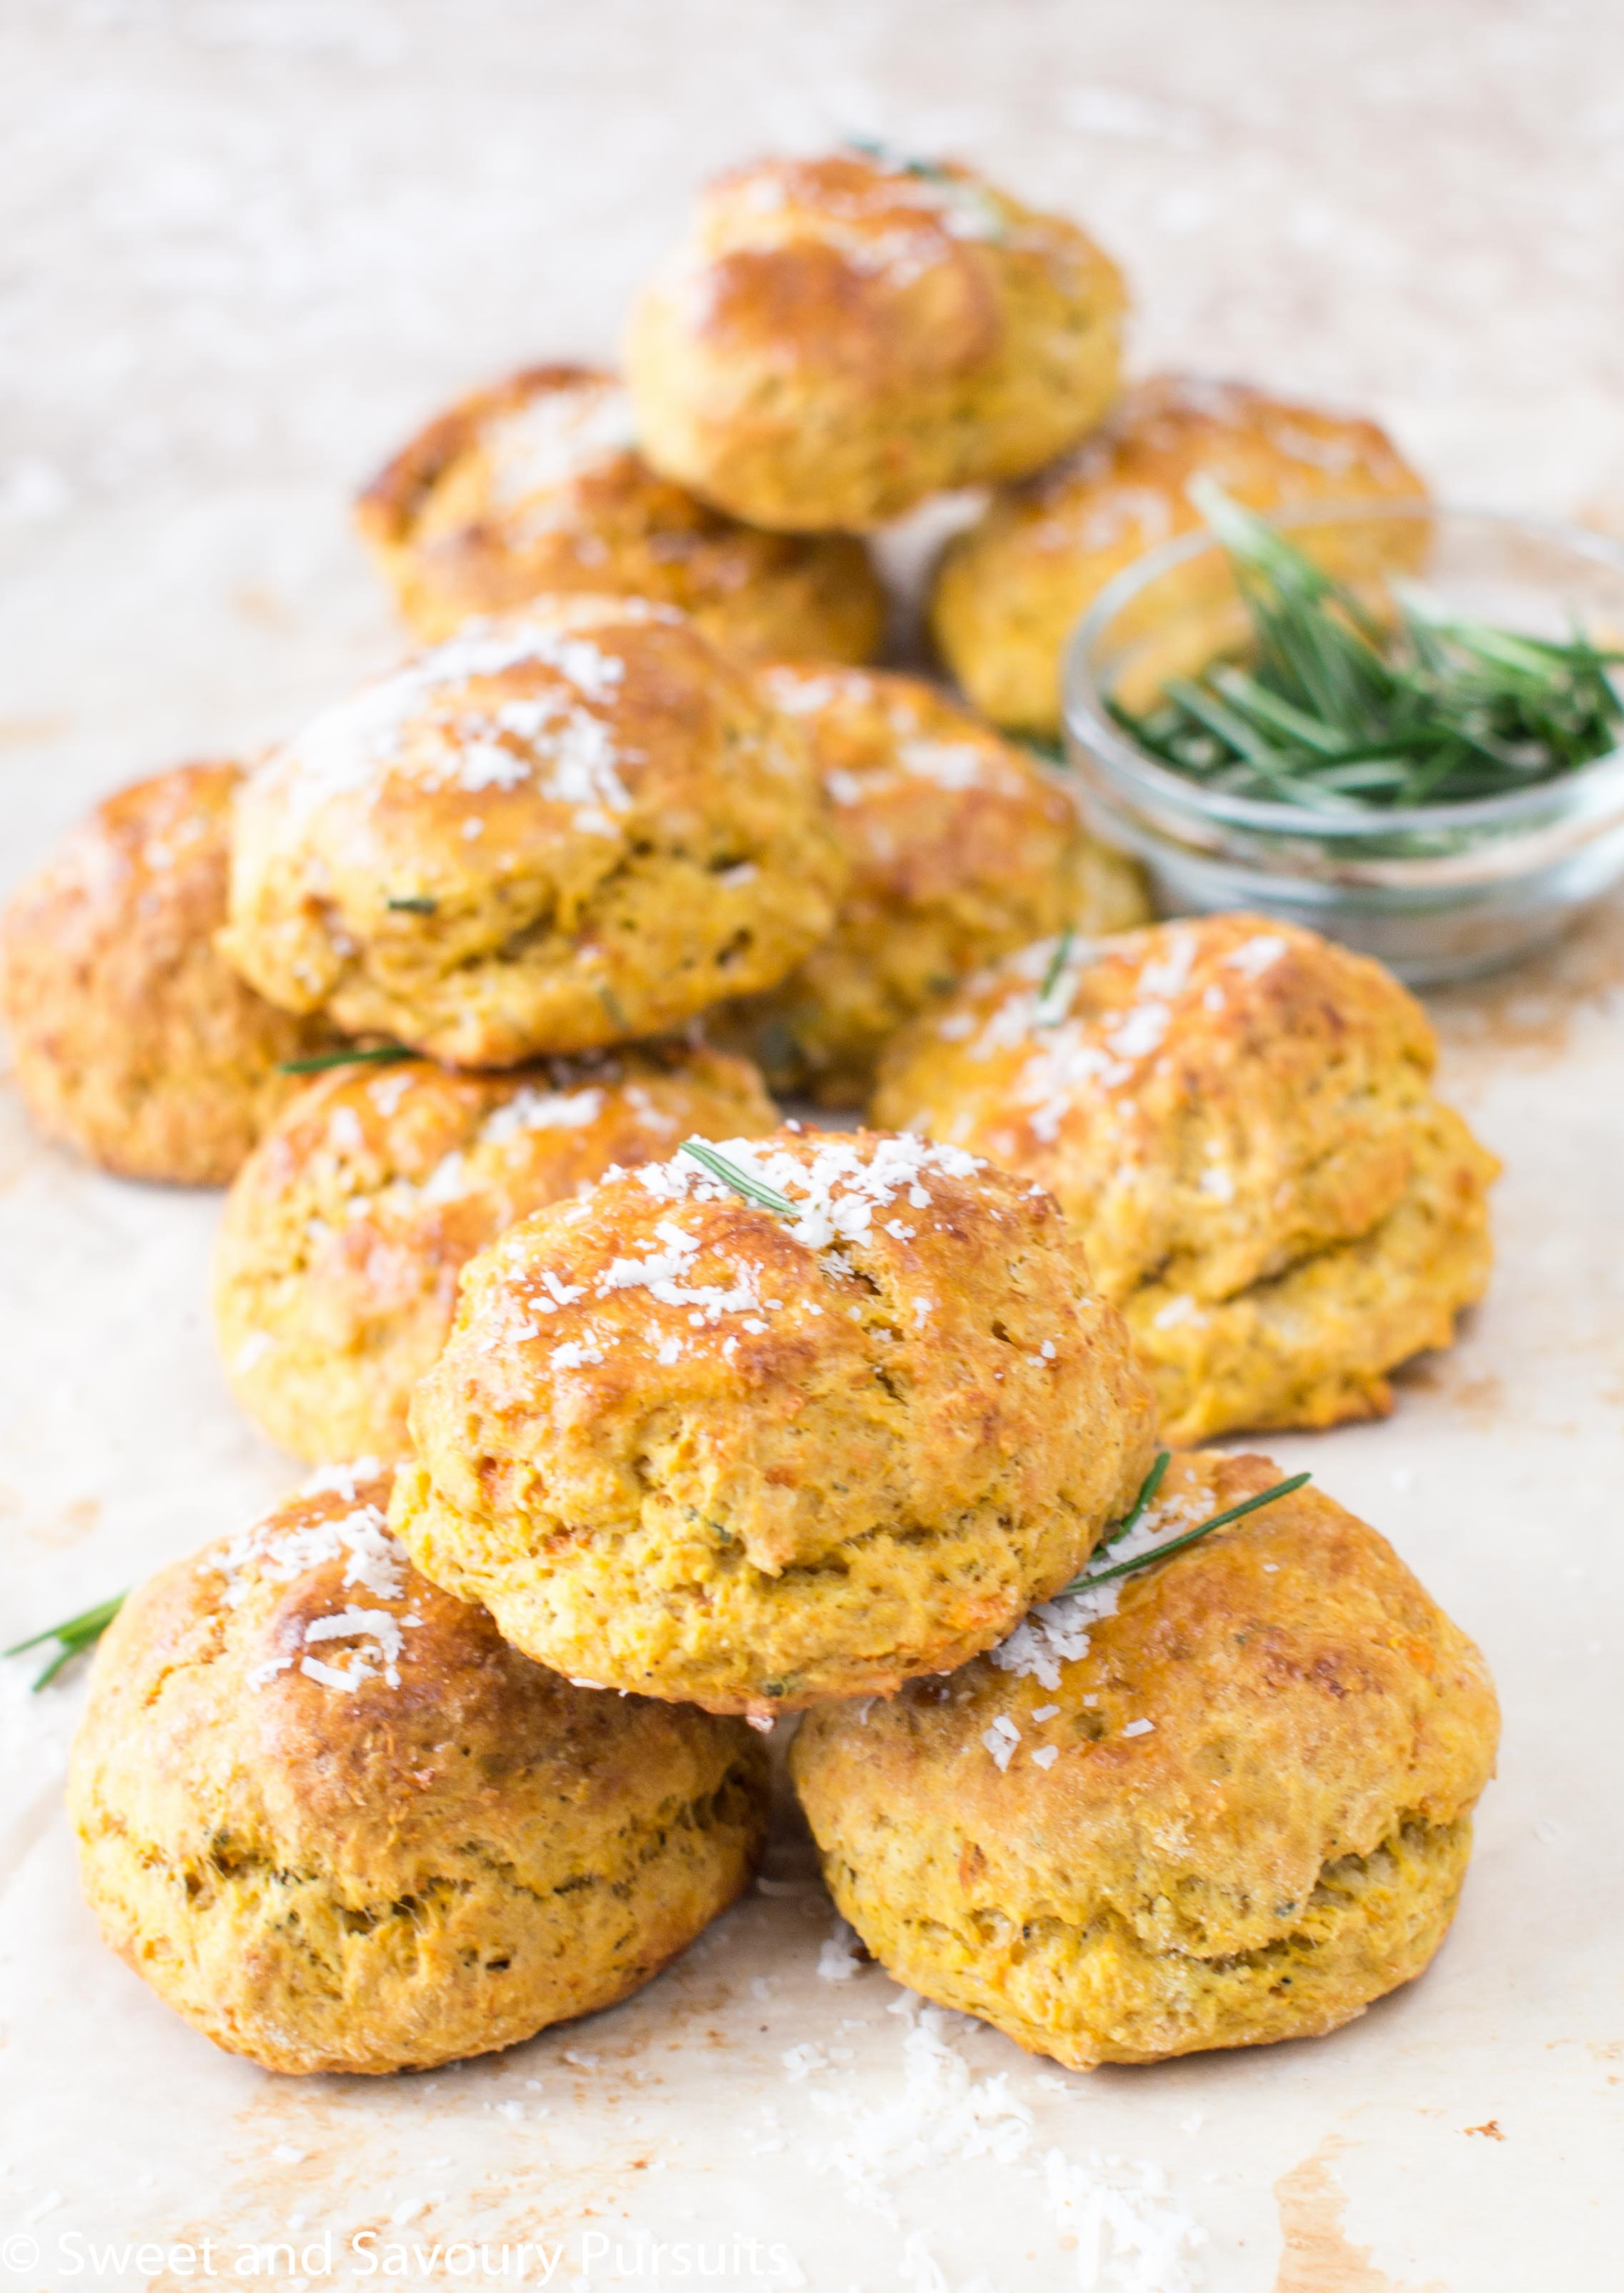 These beautiful and easy to make Sweet Potato, Parmesan and Rosemary Biscuits are tender, moist and just loaded with delicious flavour.